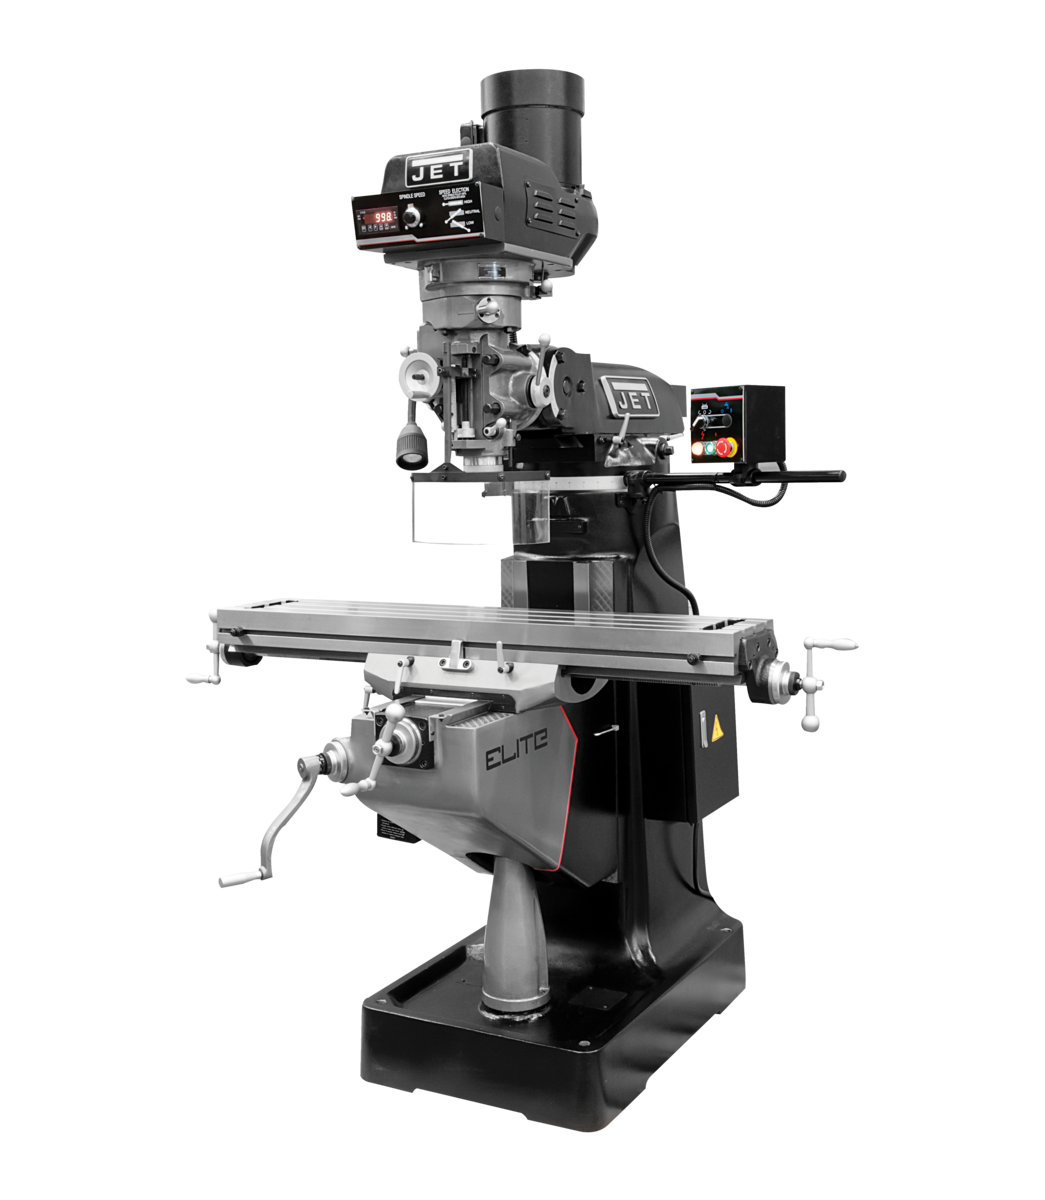 EVS-949 Mill with 3-Axis ACU-RITE 303 (Quill) DRO and Servo X, Y-Axis Powerfeeds